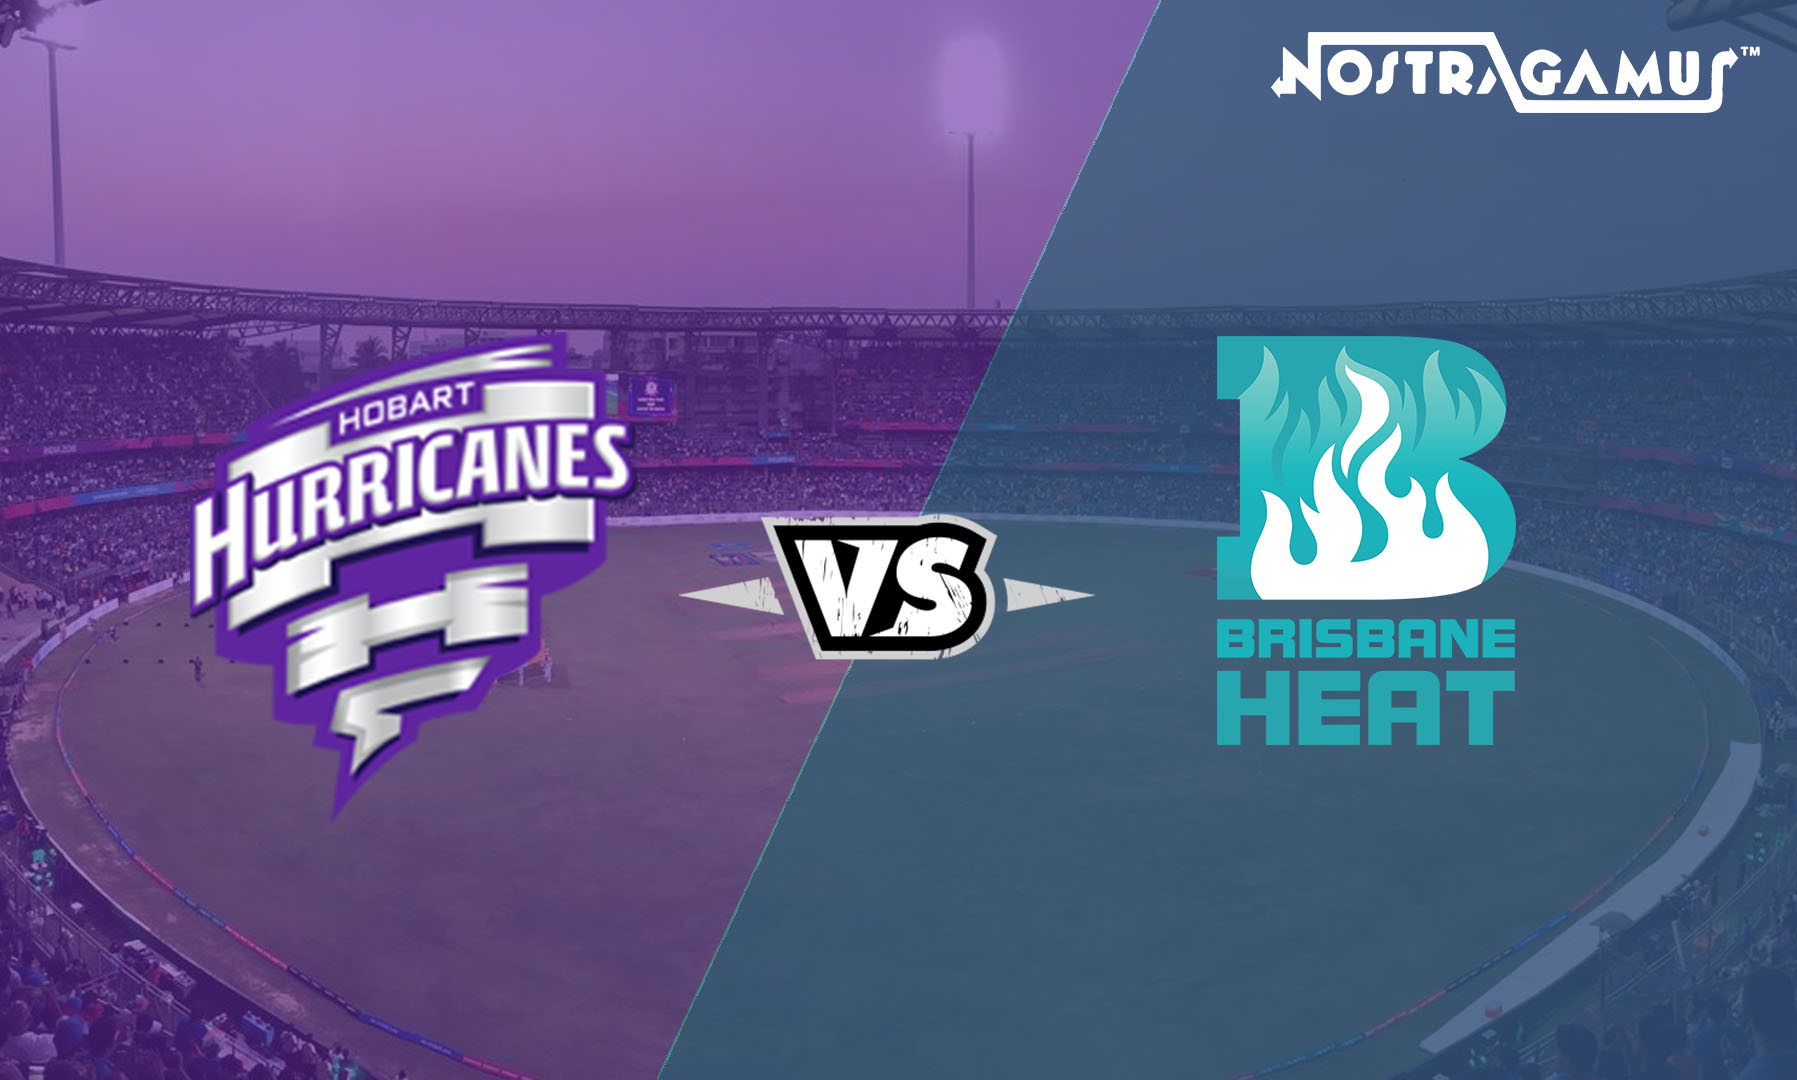 BBL 2019 Match Prediction: Hobart Hurricanes vs Brisbane Heat